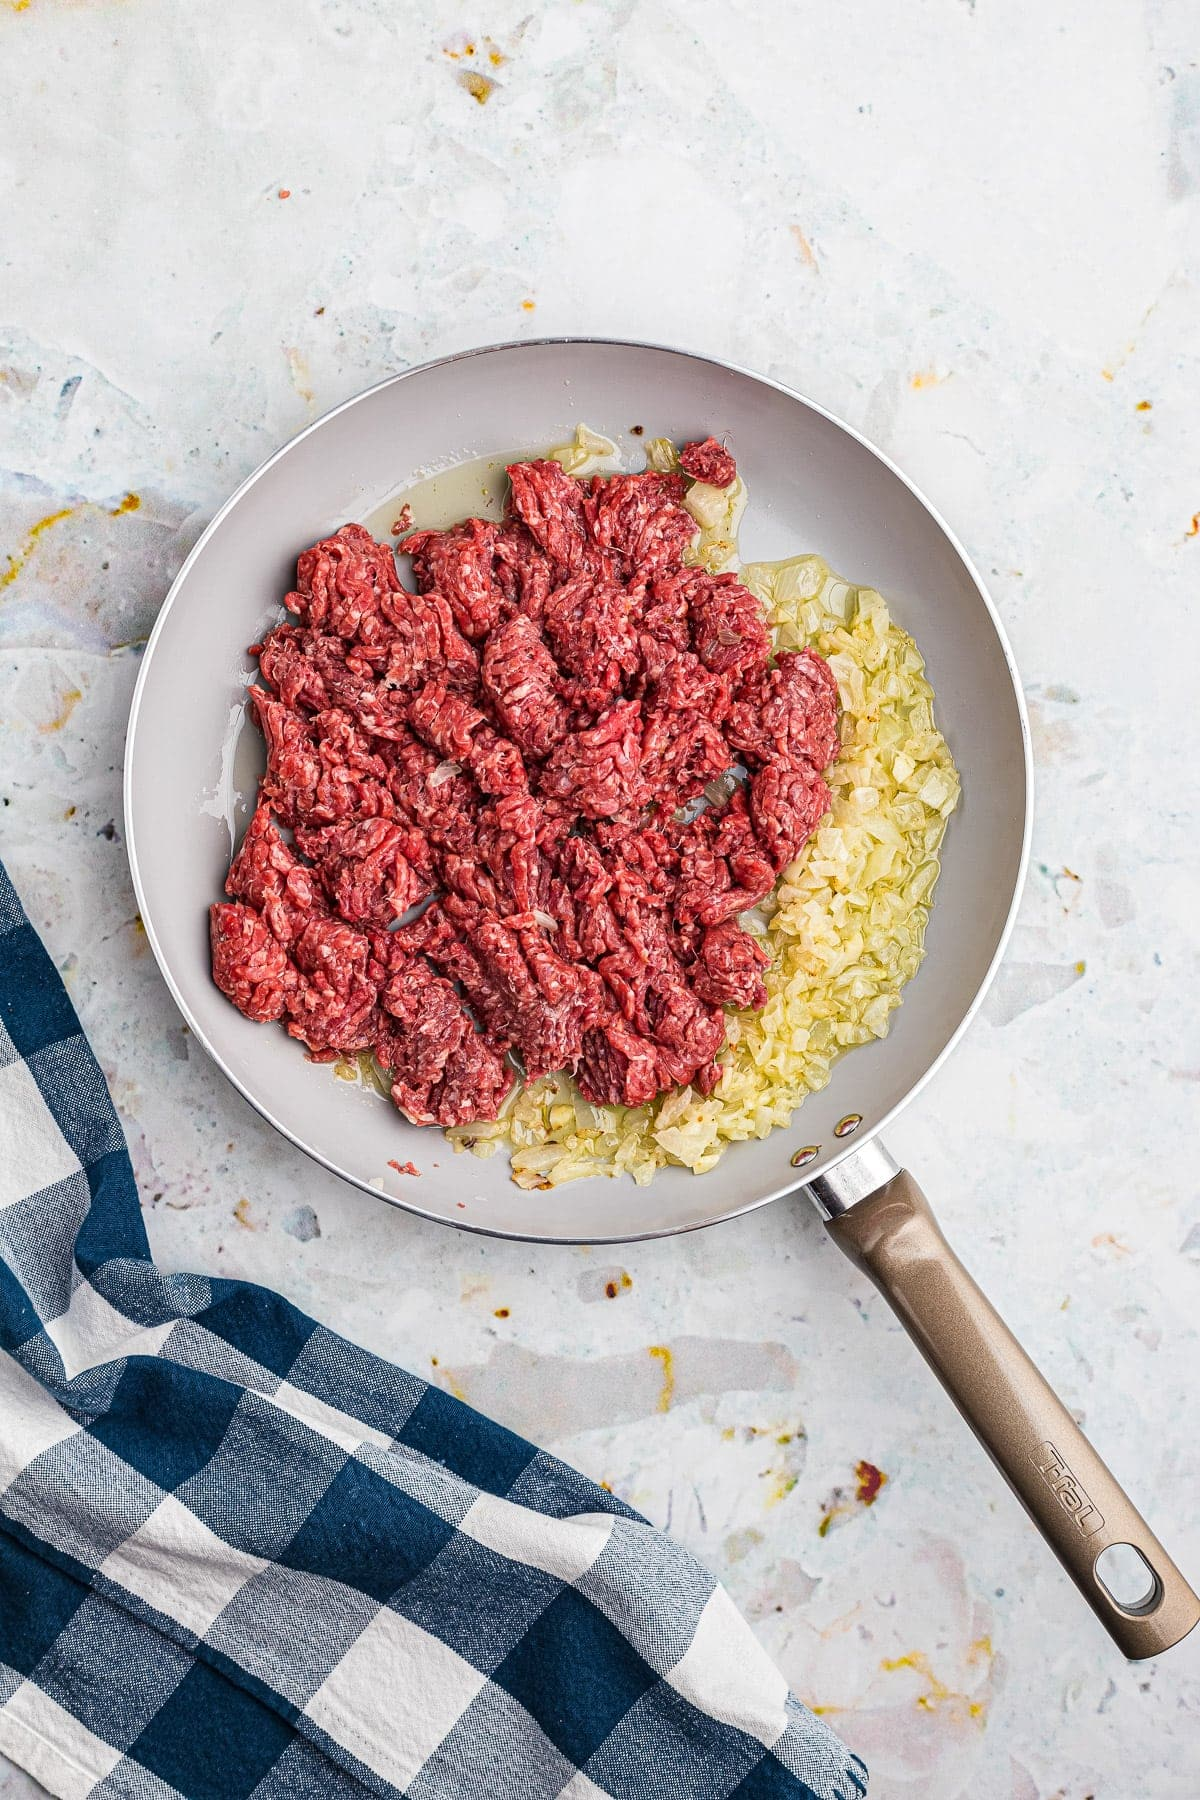 Ground beef, onions and garlic in skillet before browning.